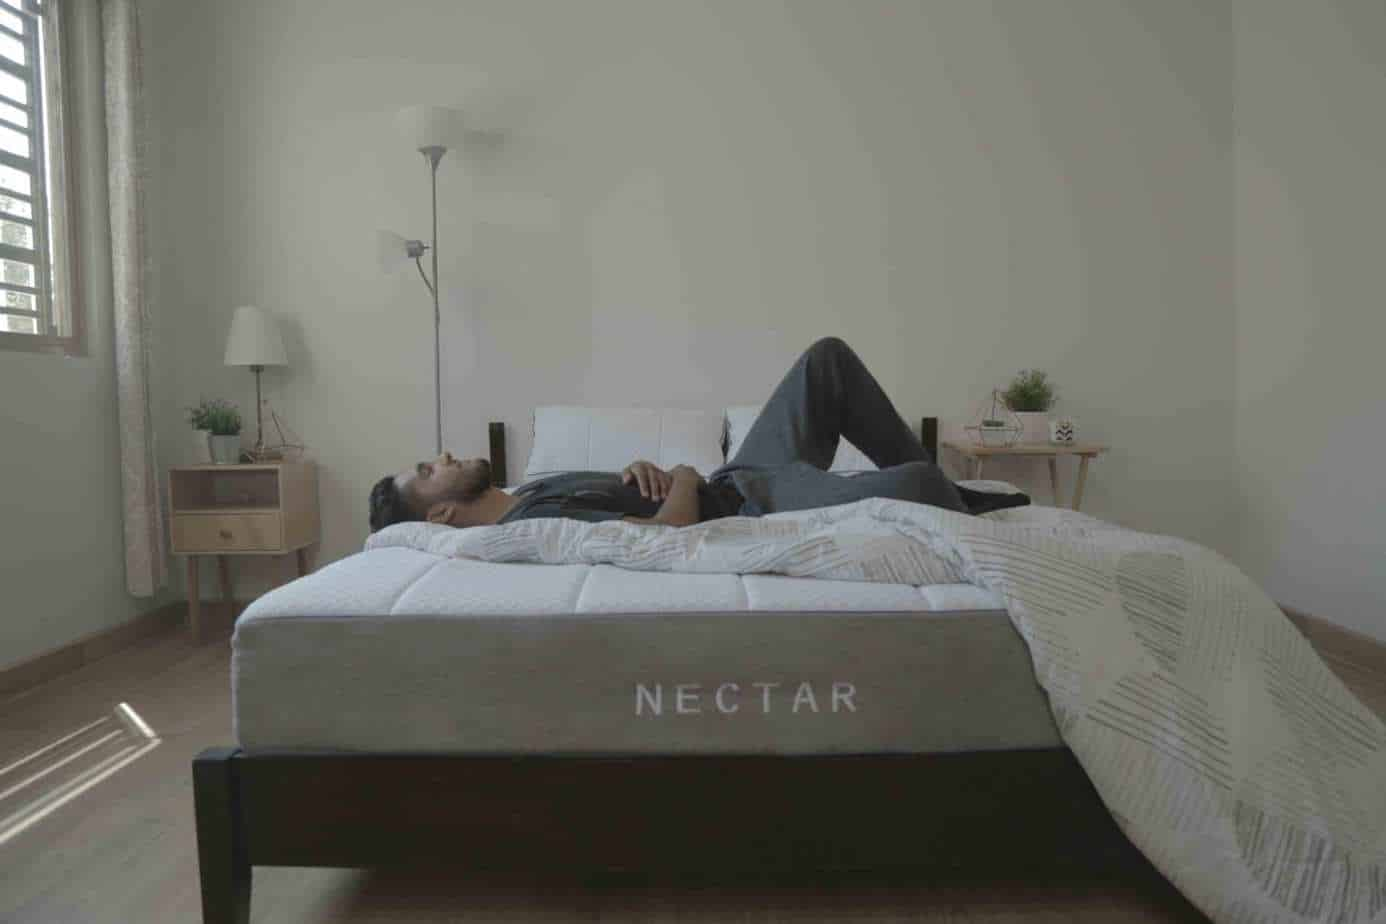 How Much Weight Can a Nectar Mattress Hold